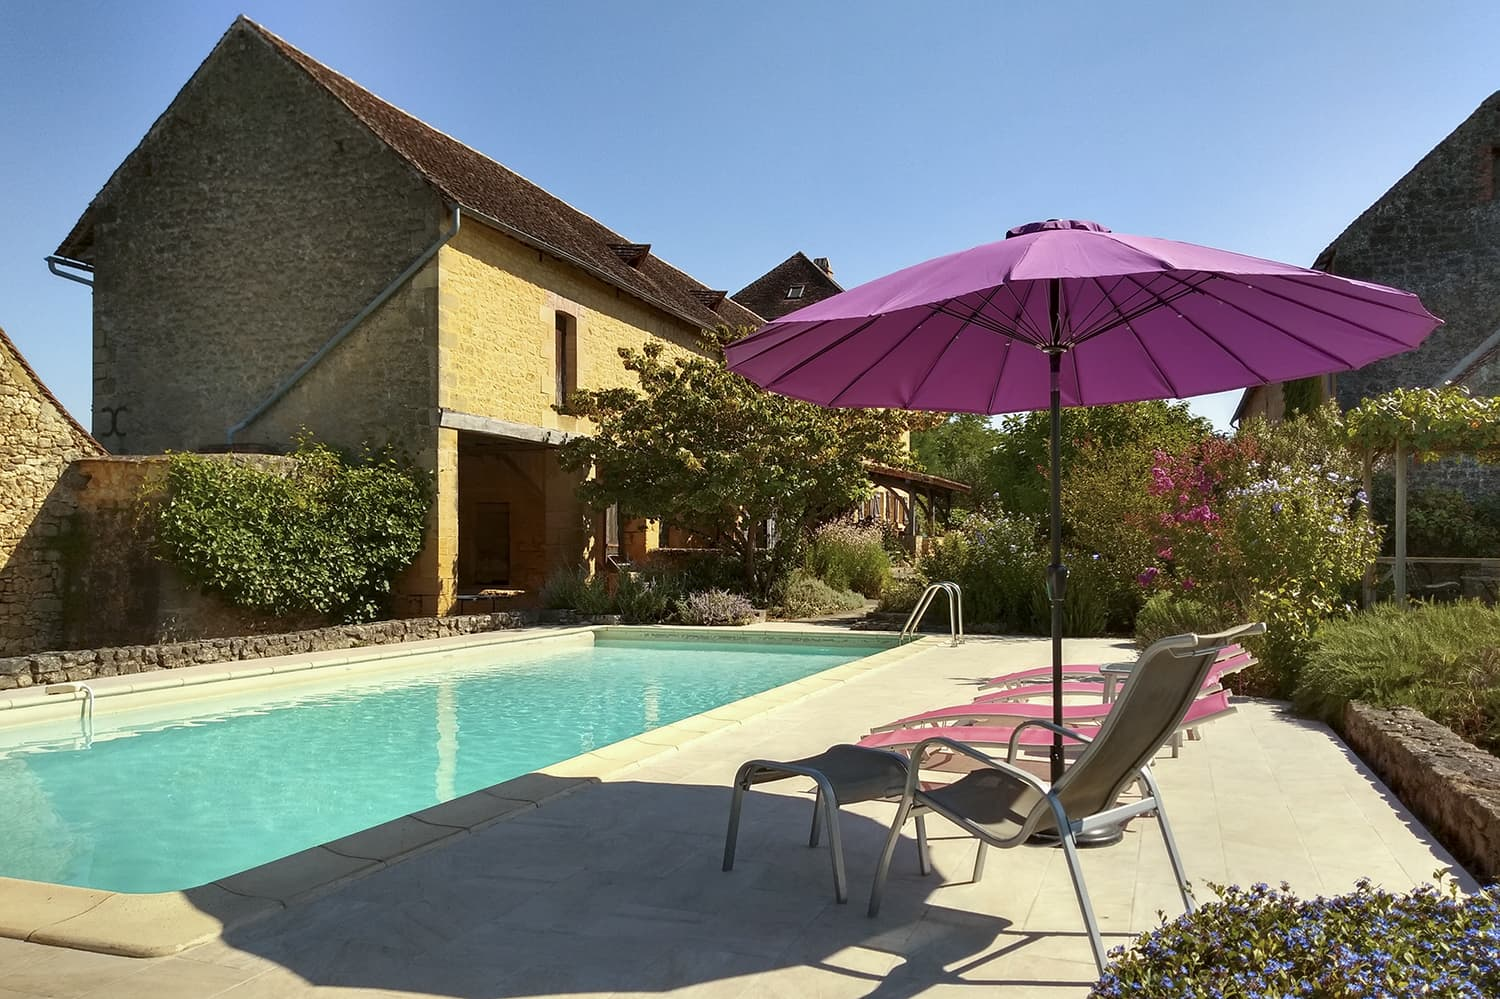 Holiday accommodation near Domme with private pool